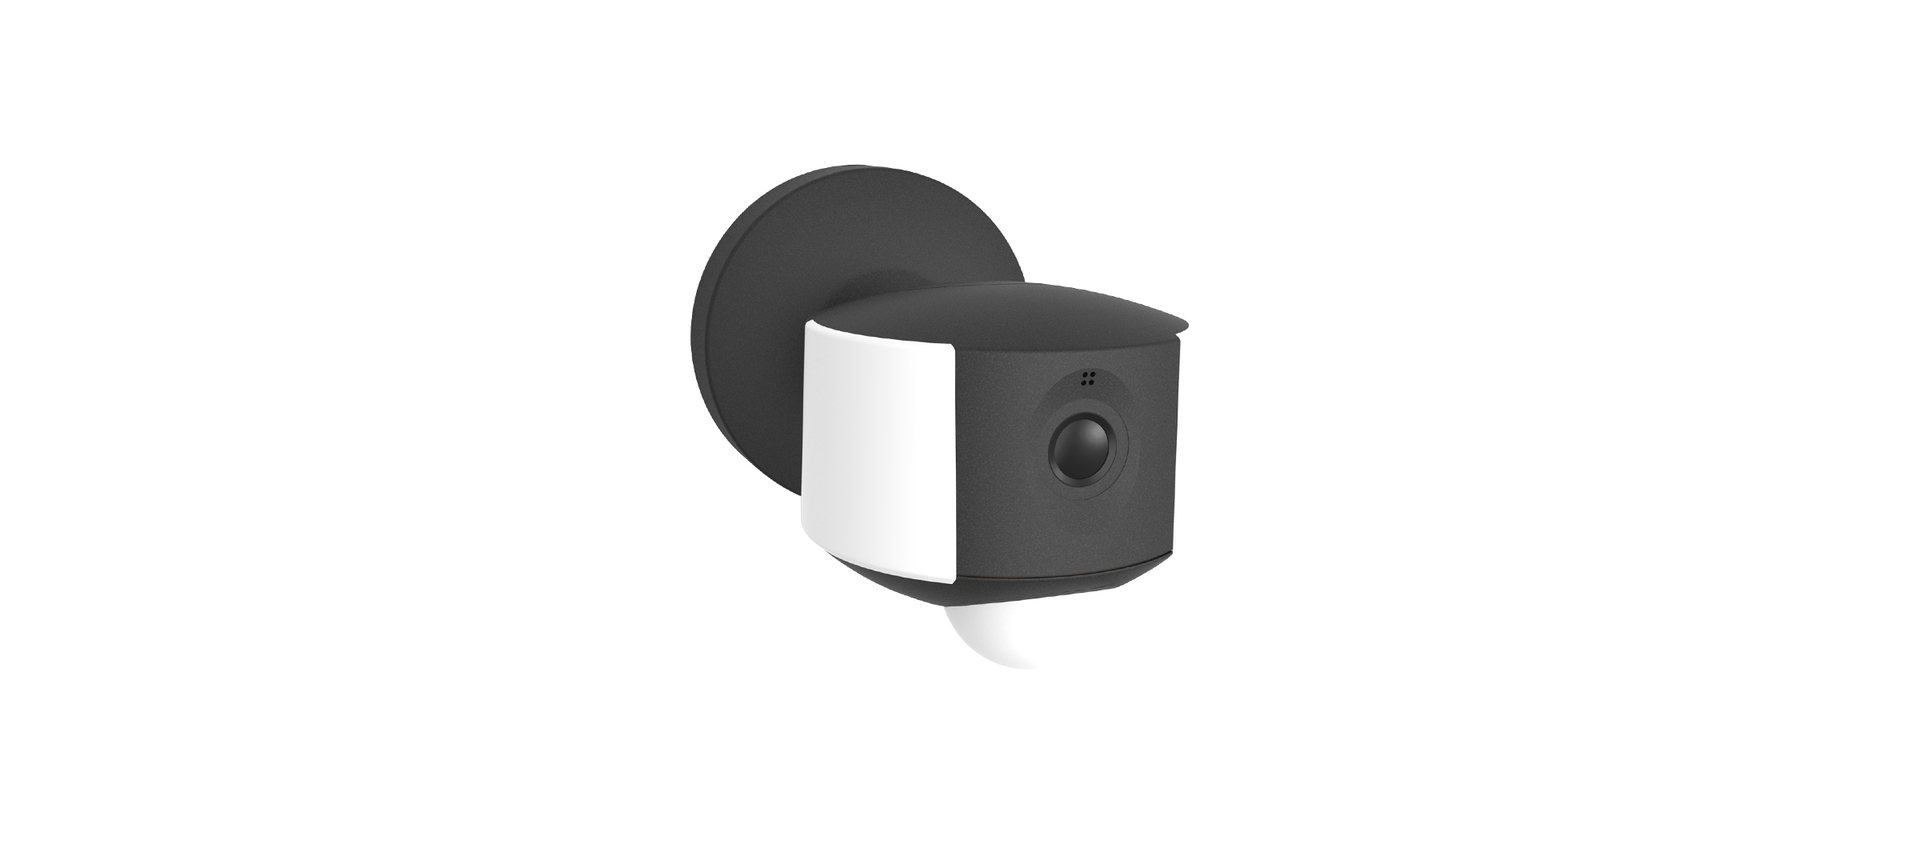 Outdoor wall lamp with a built-in camera, motion sensor and Lutec ARA speaker